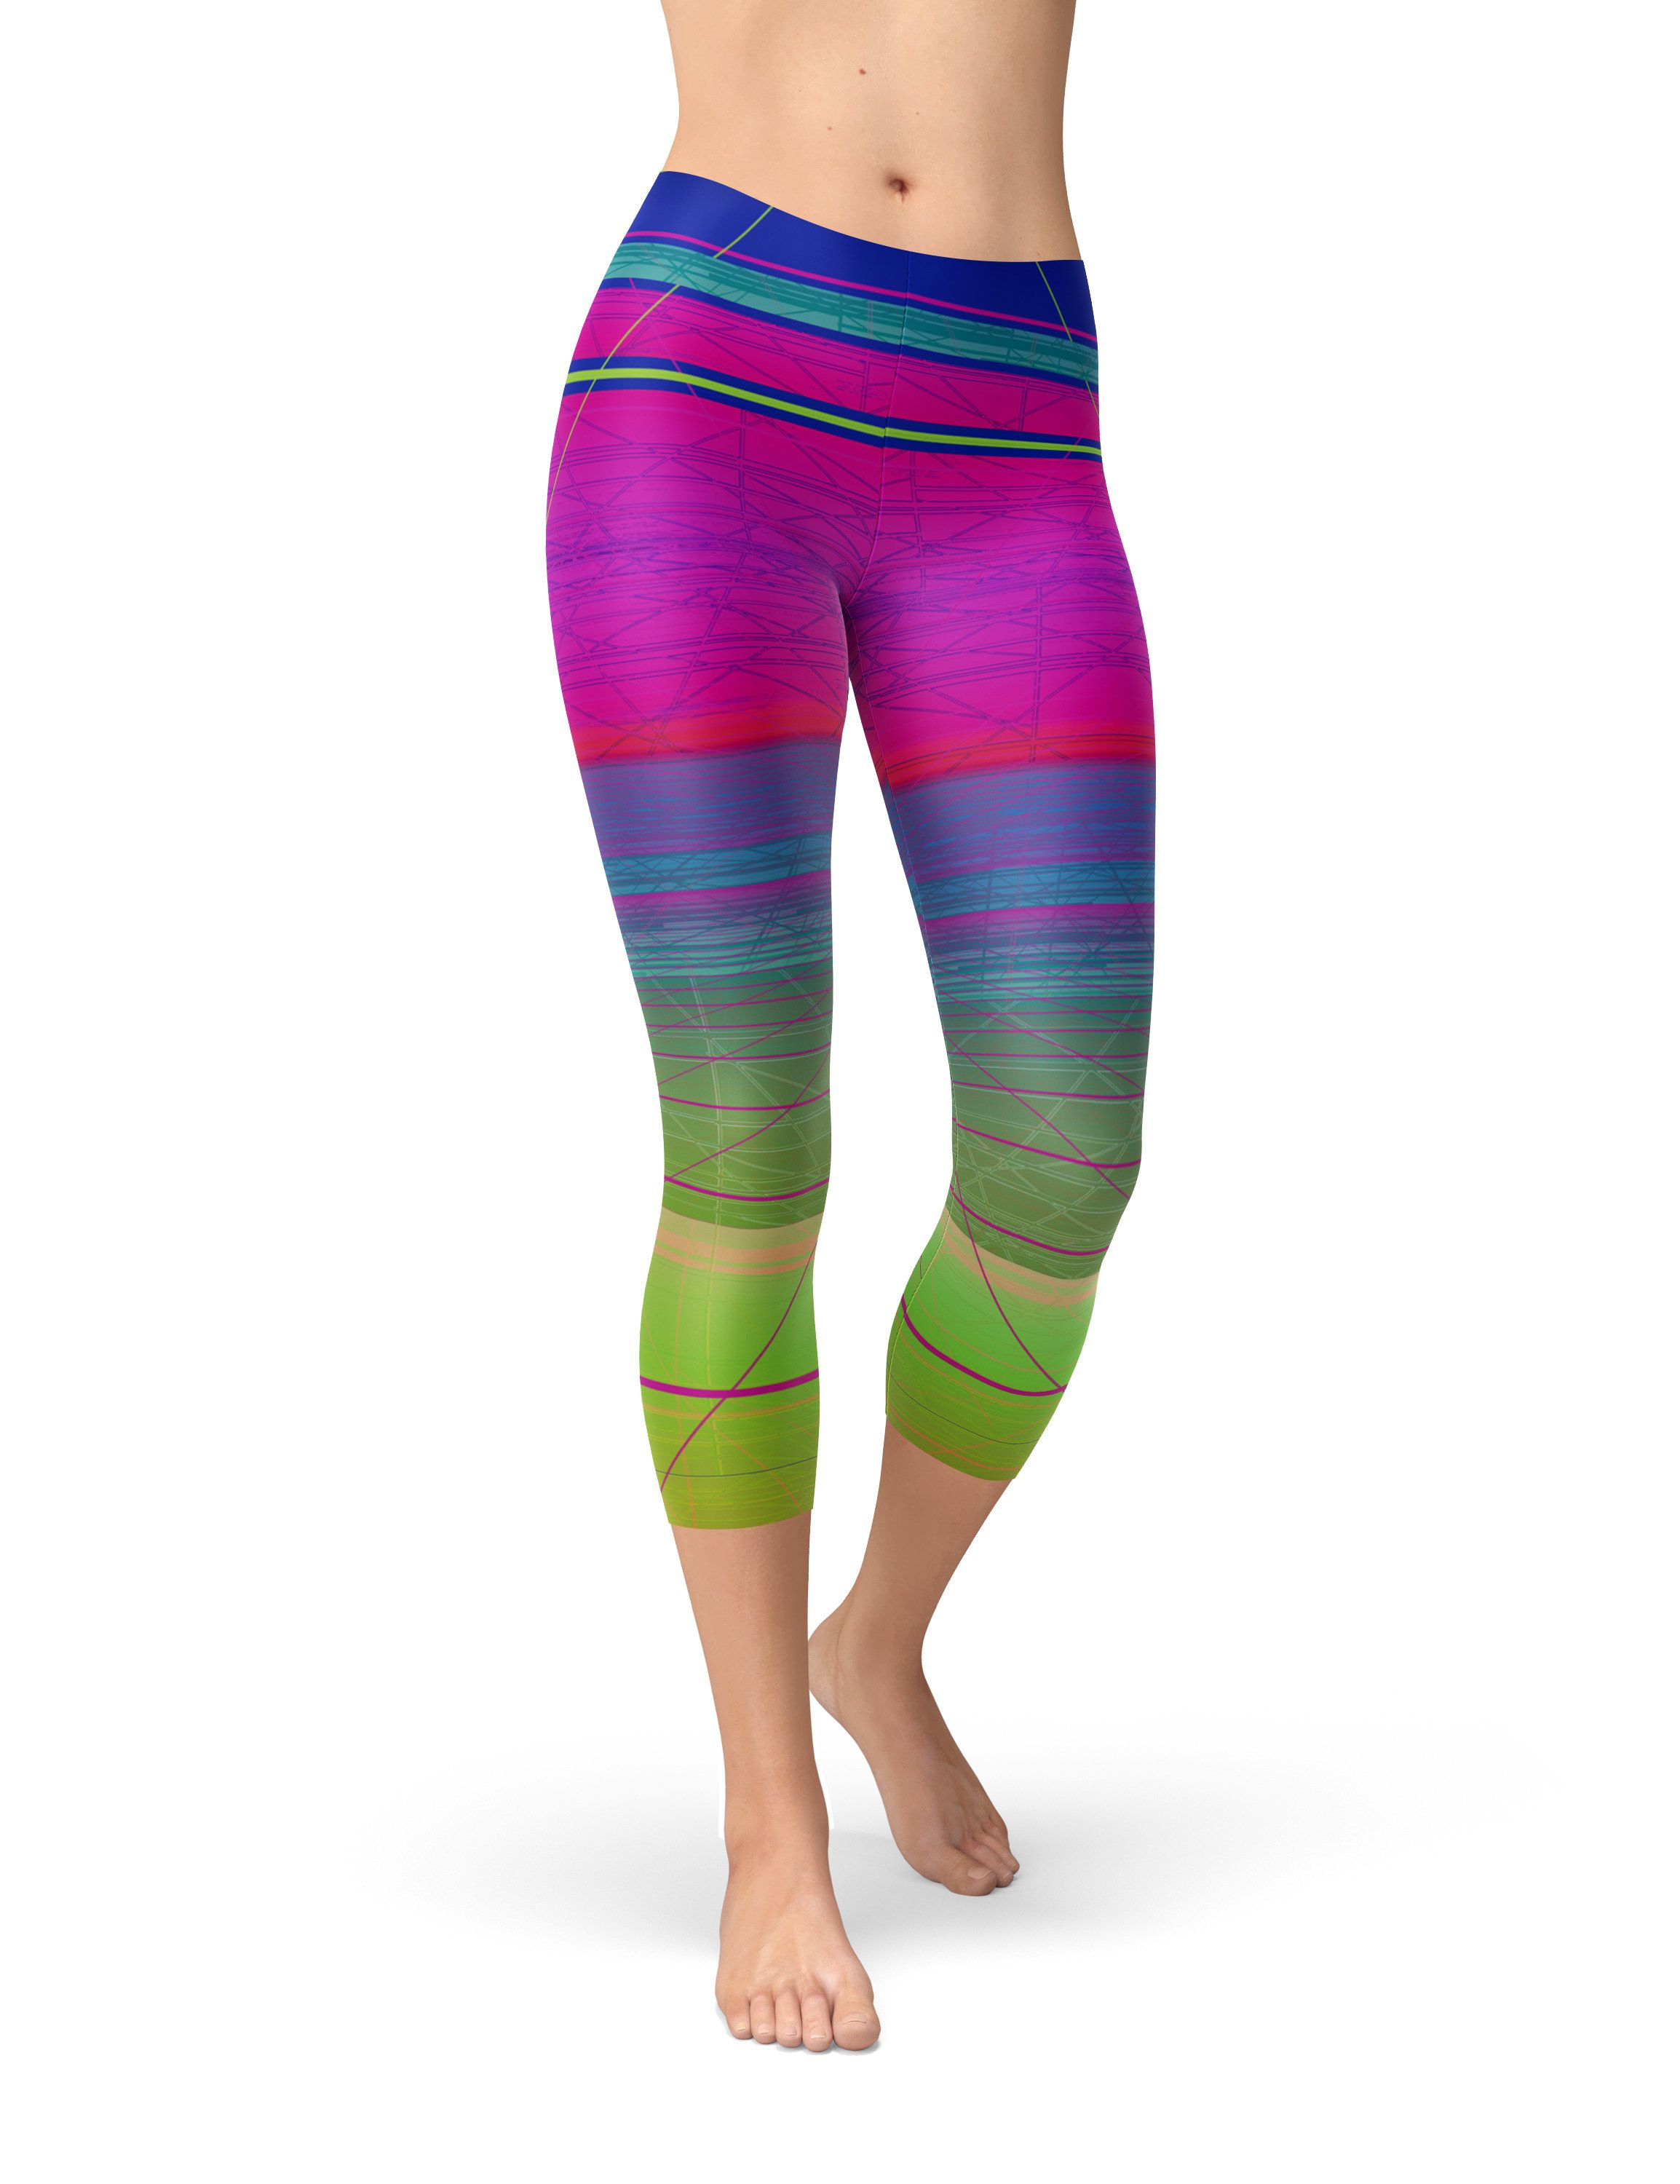 8e6eb139be7175 The design on these workout leggings is printed on a silky soft, stretch  fabric using water-based and Eco-friendly inks.